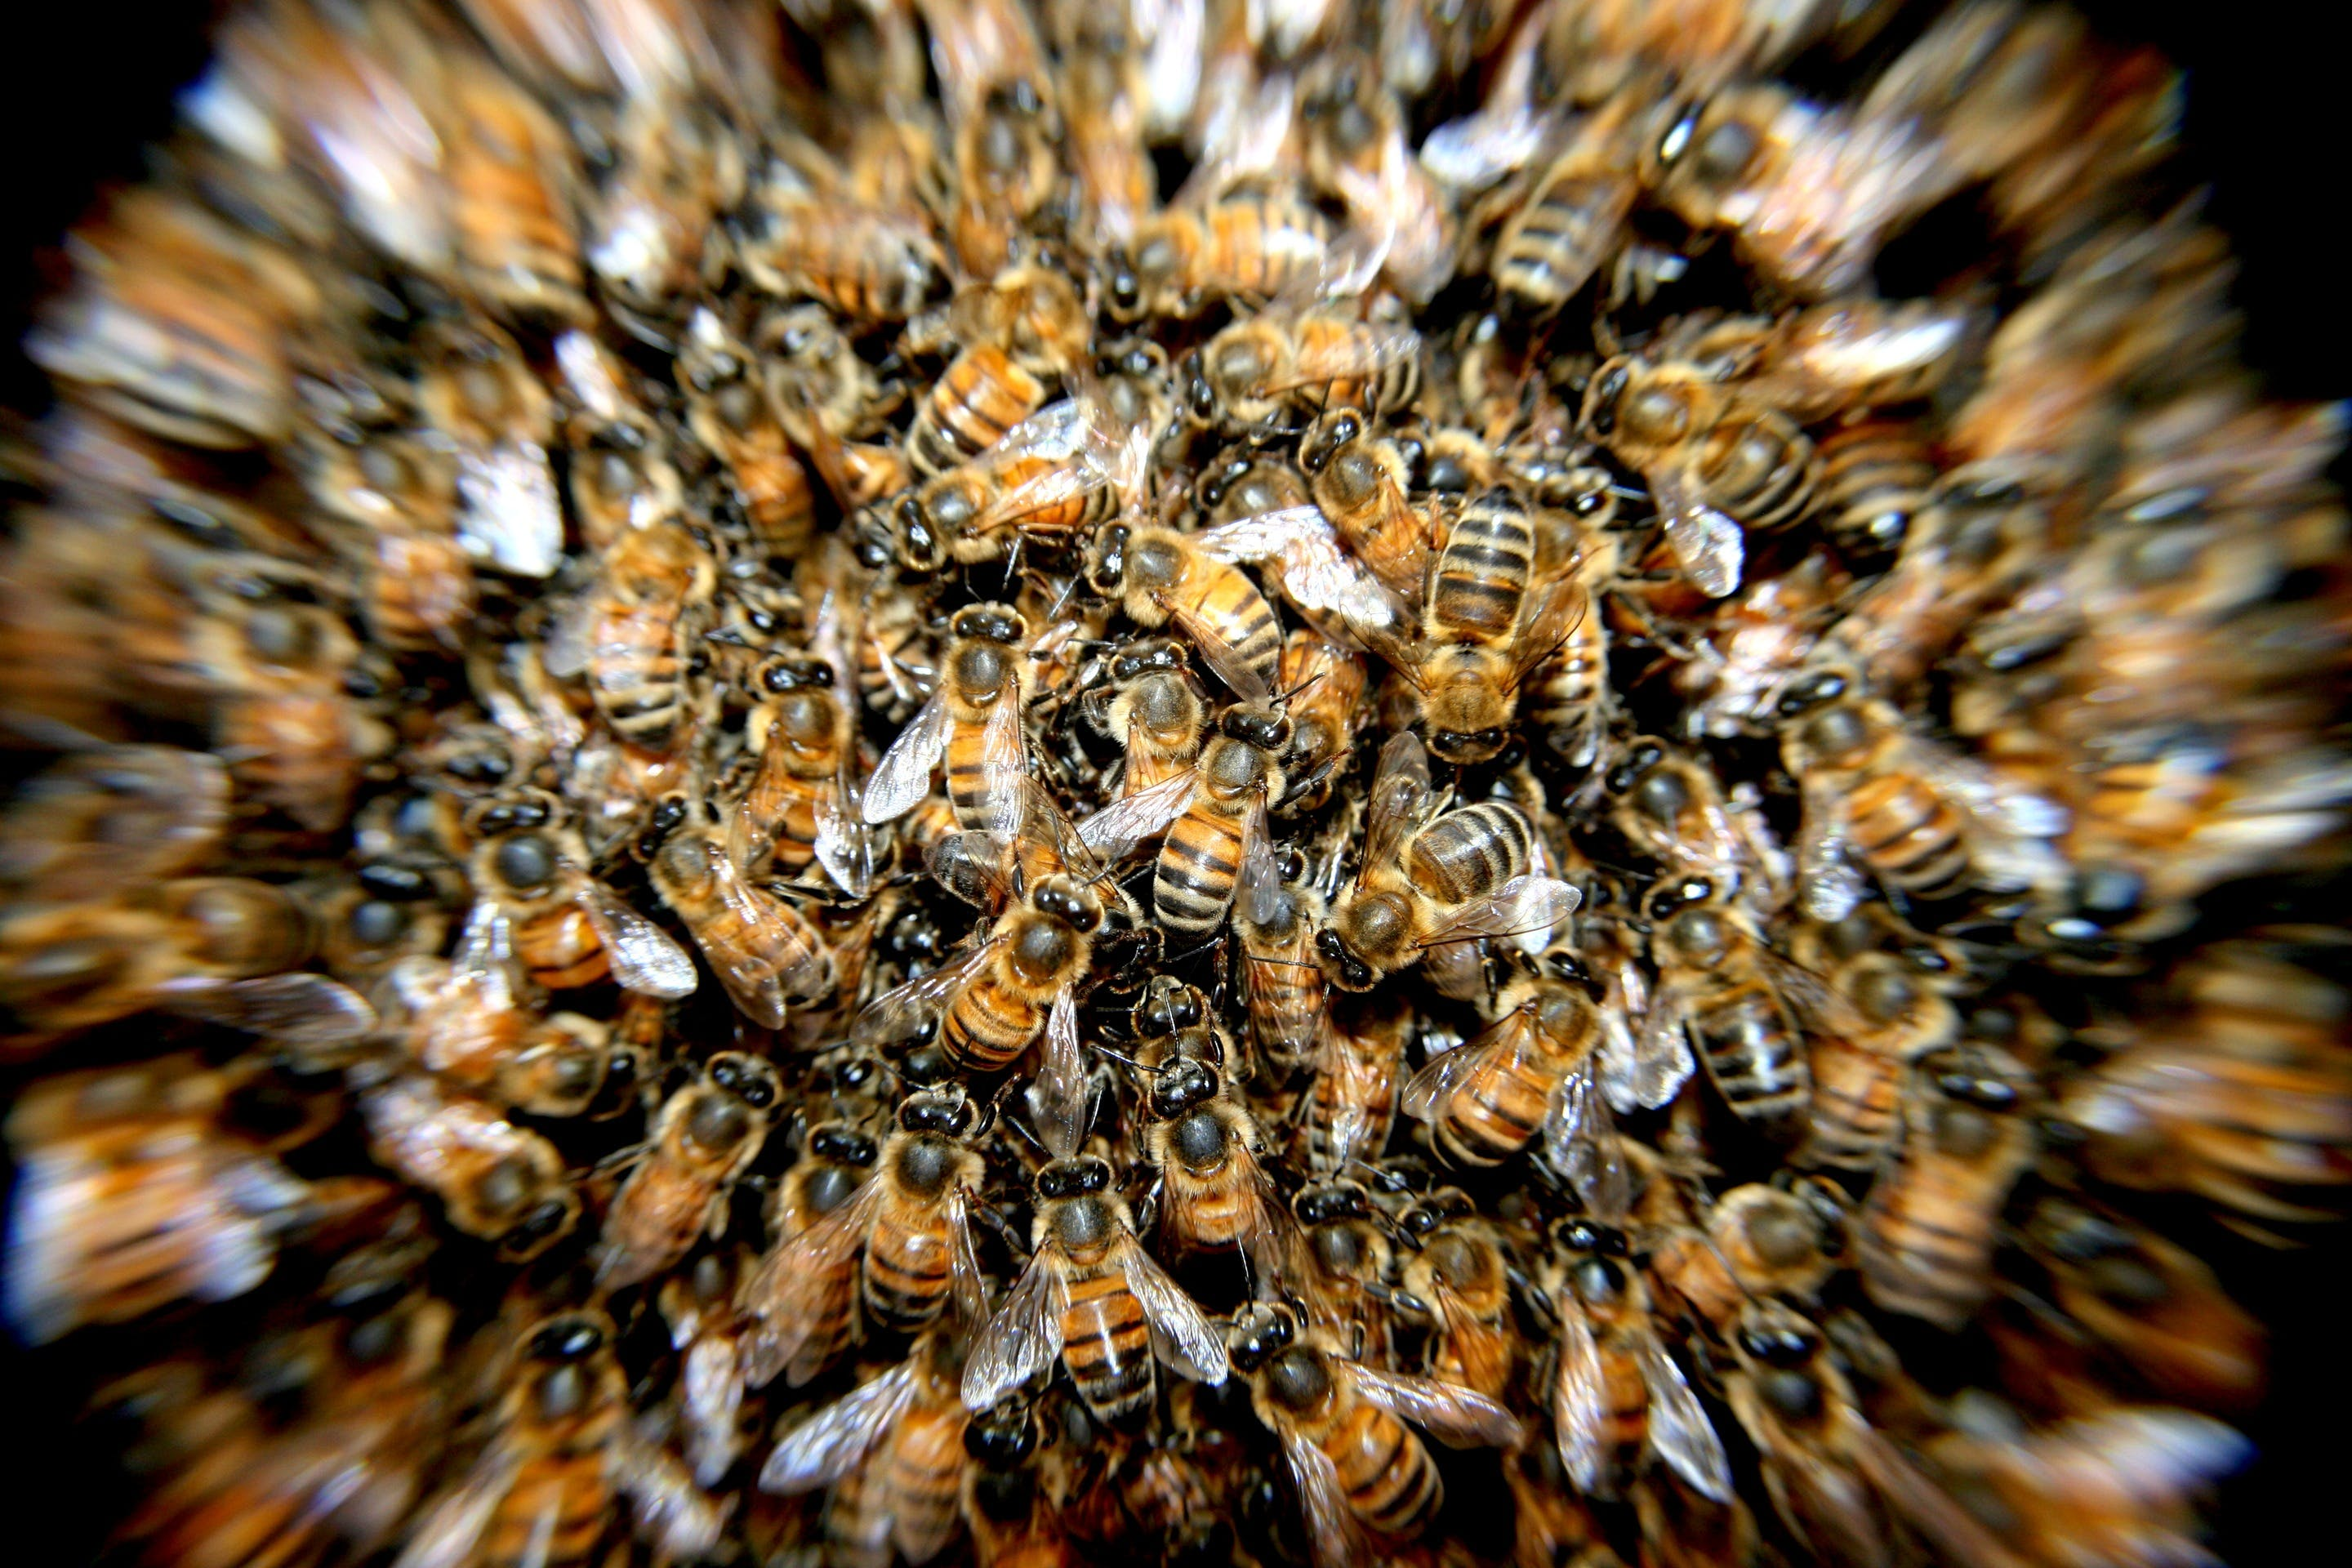 bees, blur, insects